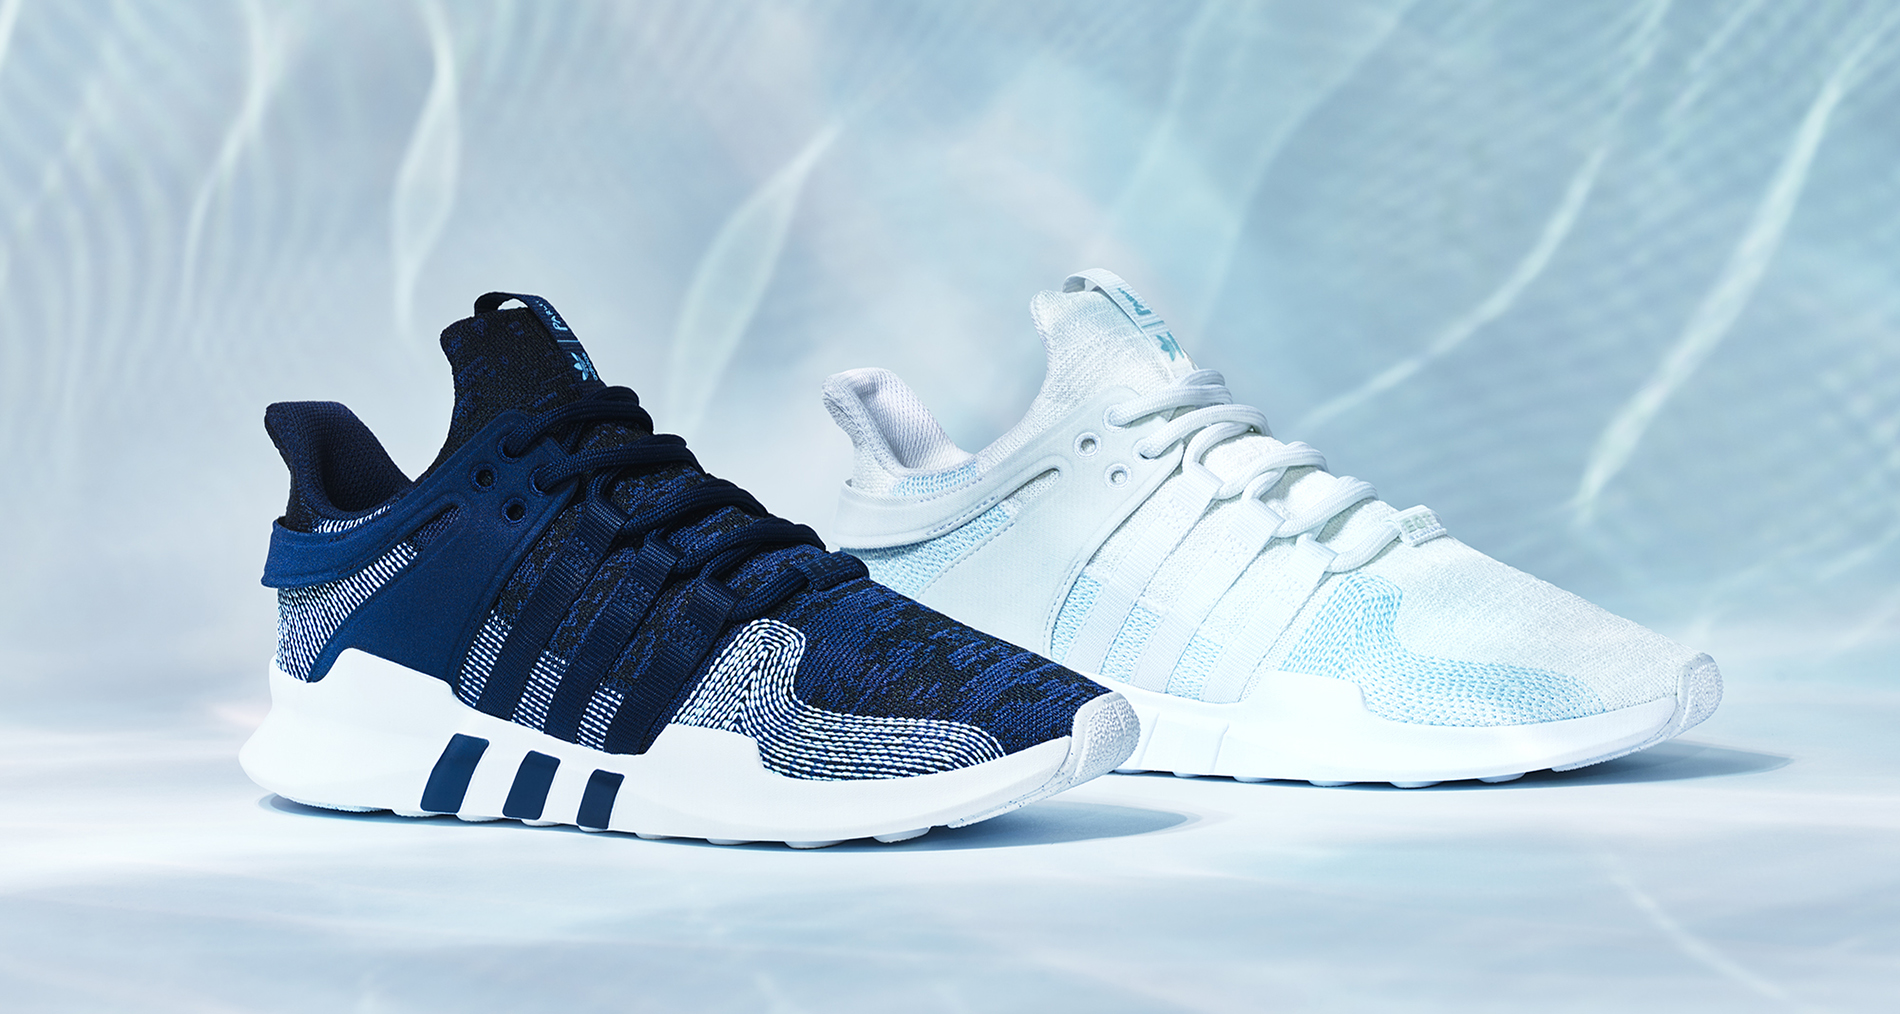 new style a2c41 93a57 Parley x adidas EQT Support ADV CK  Release Date